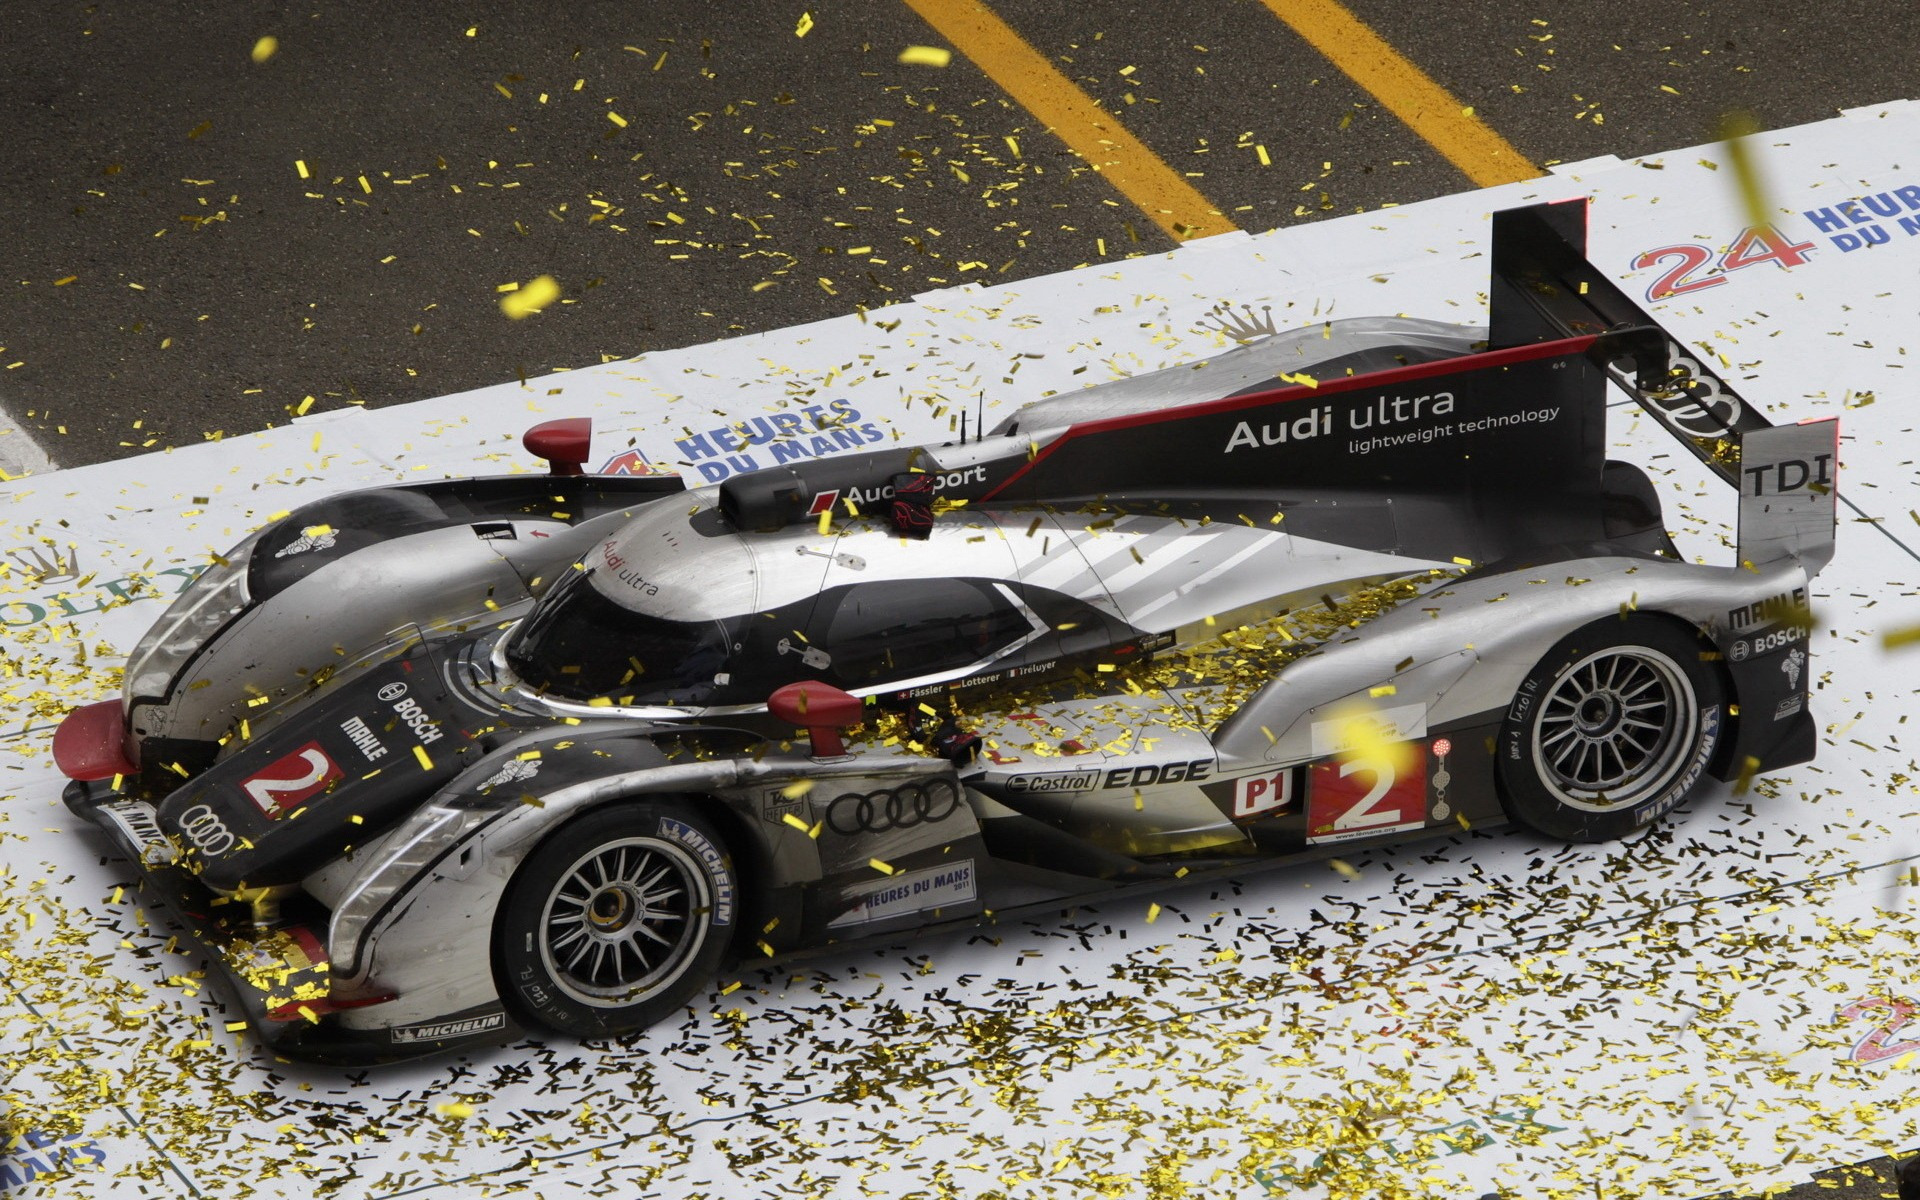 Download the Audi Le Mans Win Wallpaper Audi Le Mans Win iPhone 1920x1200